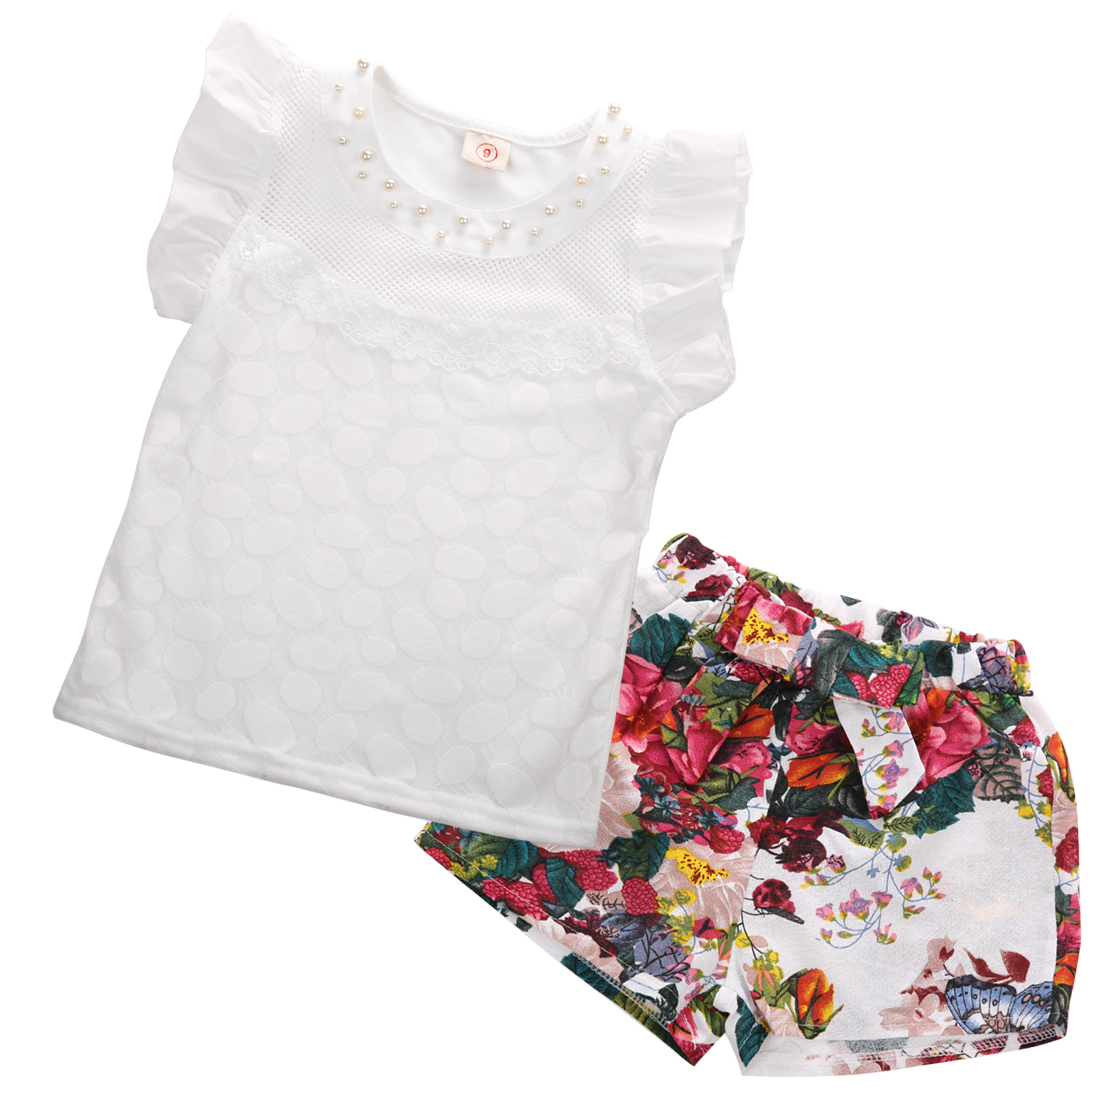 Toddler Kids Baby Girls Outfits Clothes Floral Lace T-shirt Tops+Shorts 2PCS Set